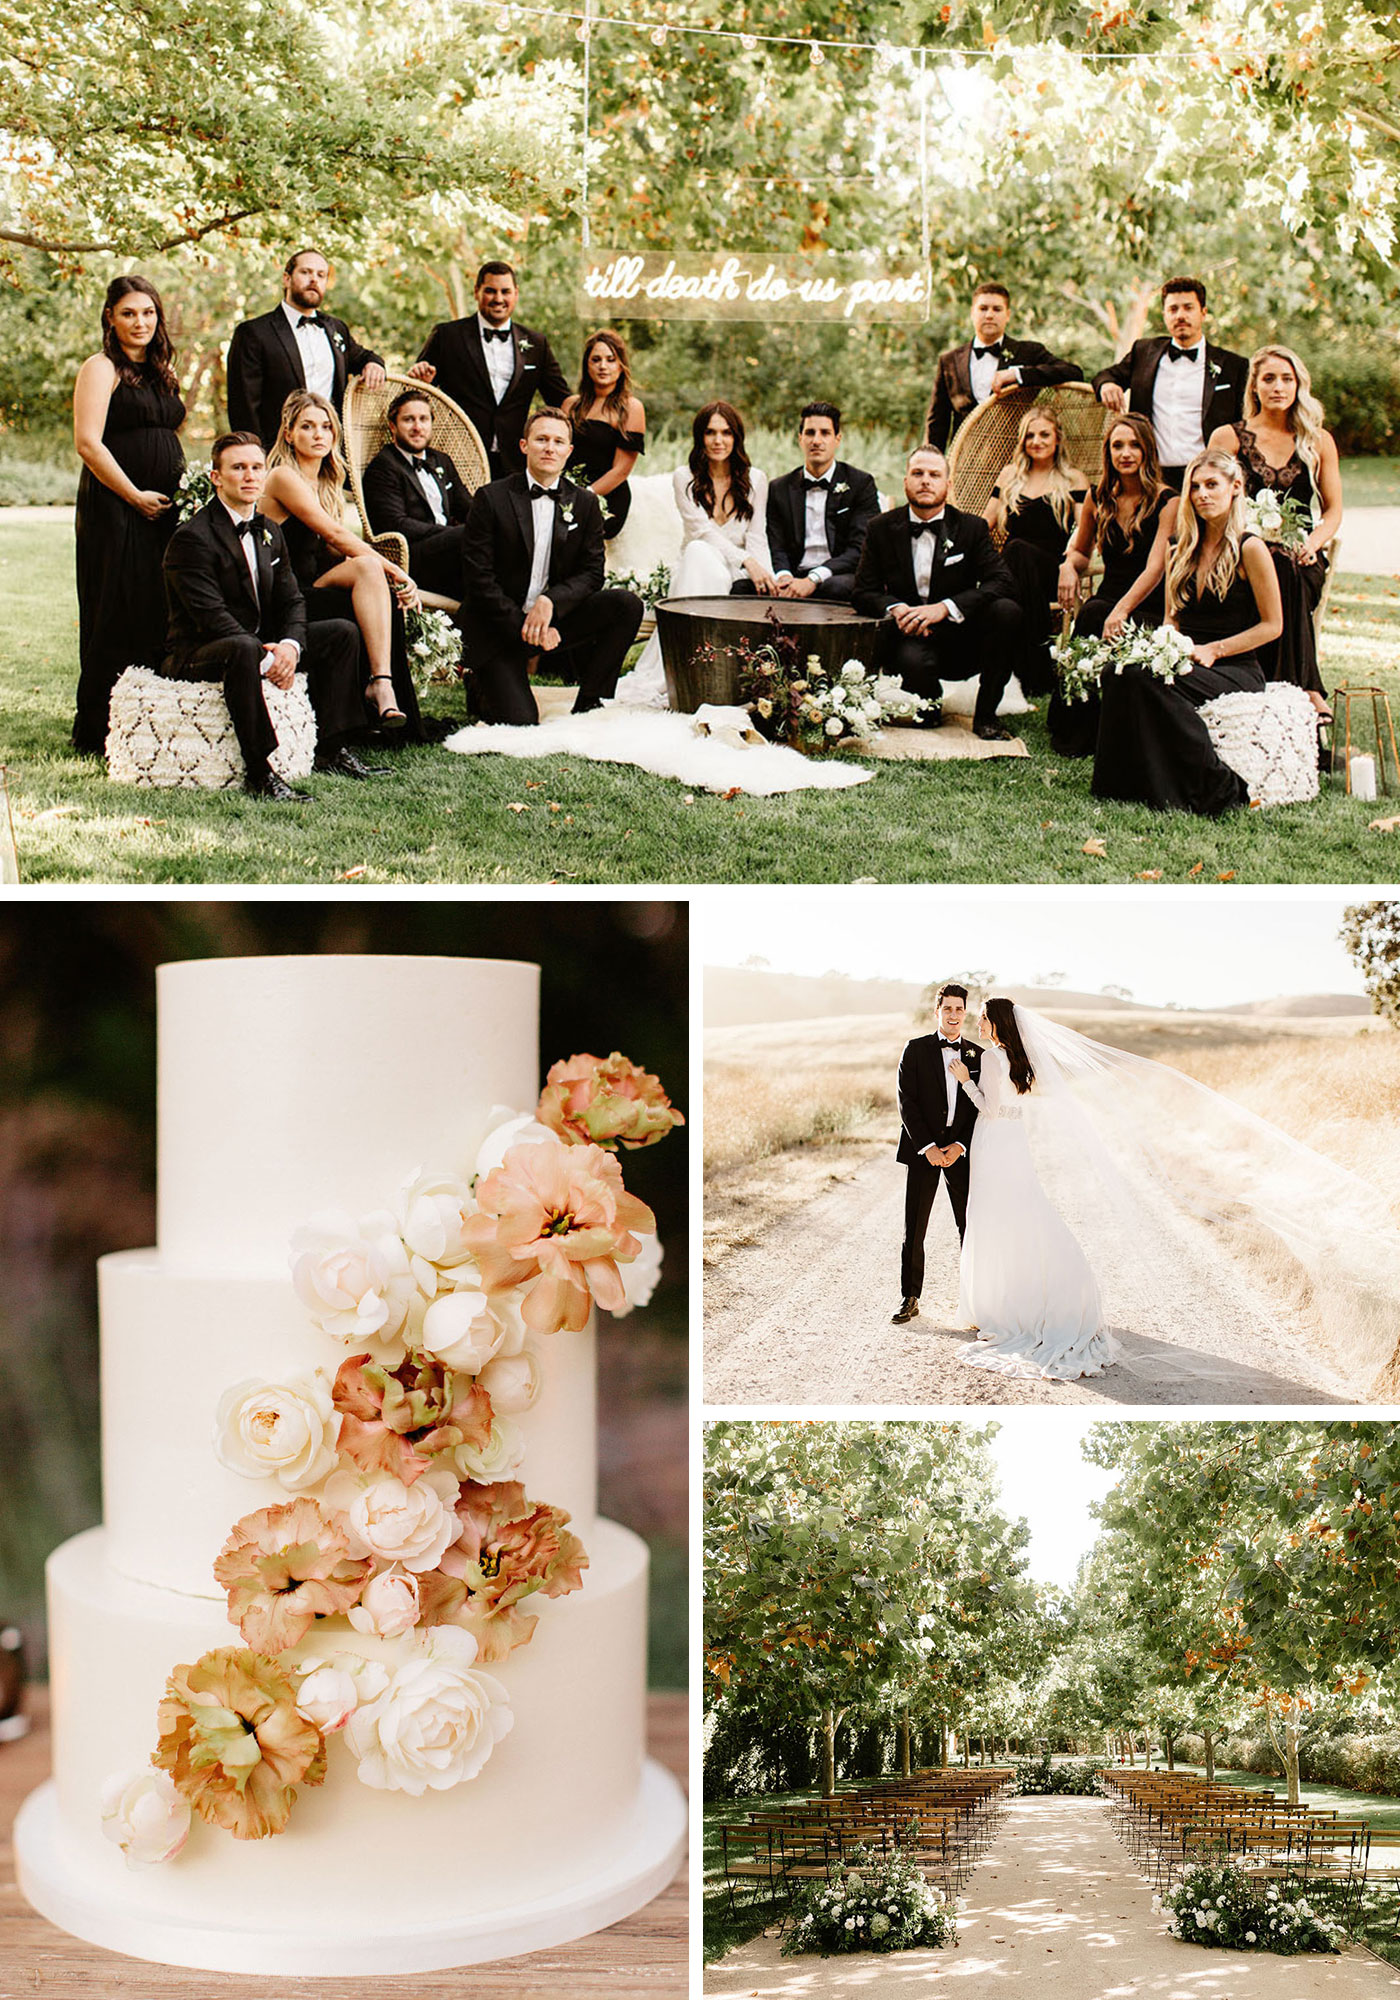 A Black Tie Affair: Modern Countryside Wedding with Luxe Boho Accents